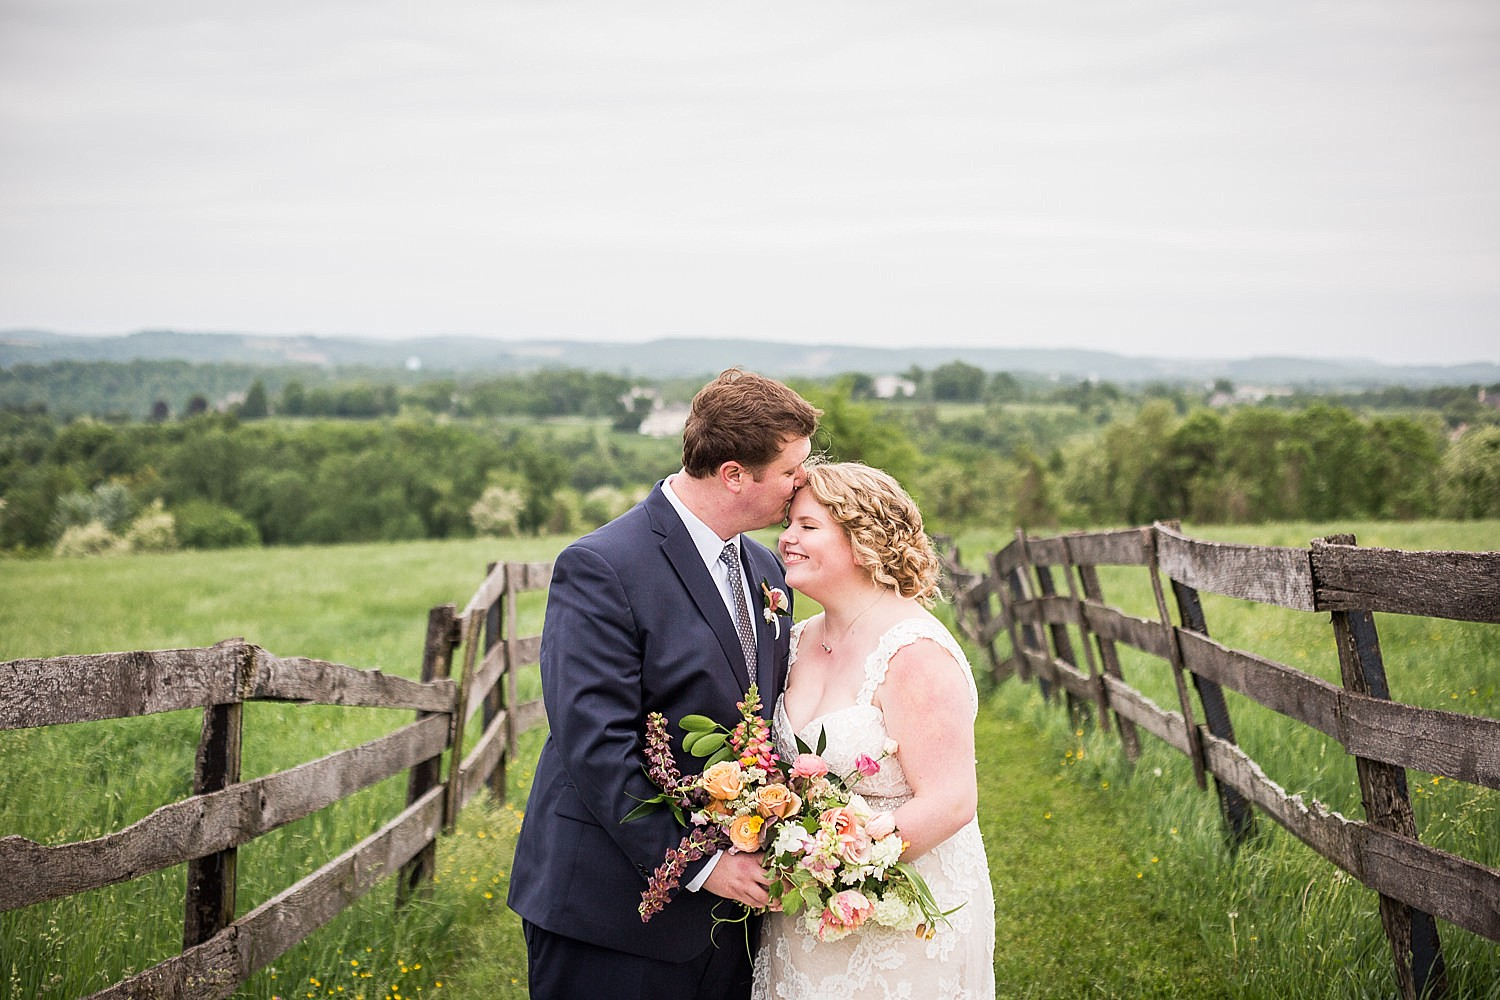 Lauxmont_Farms_wedding_rotunda_1.jpg